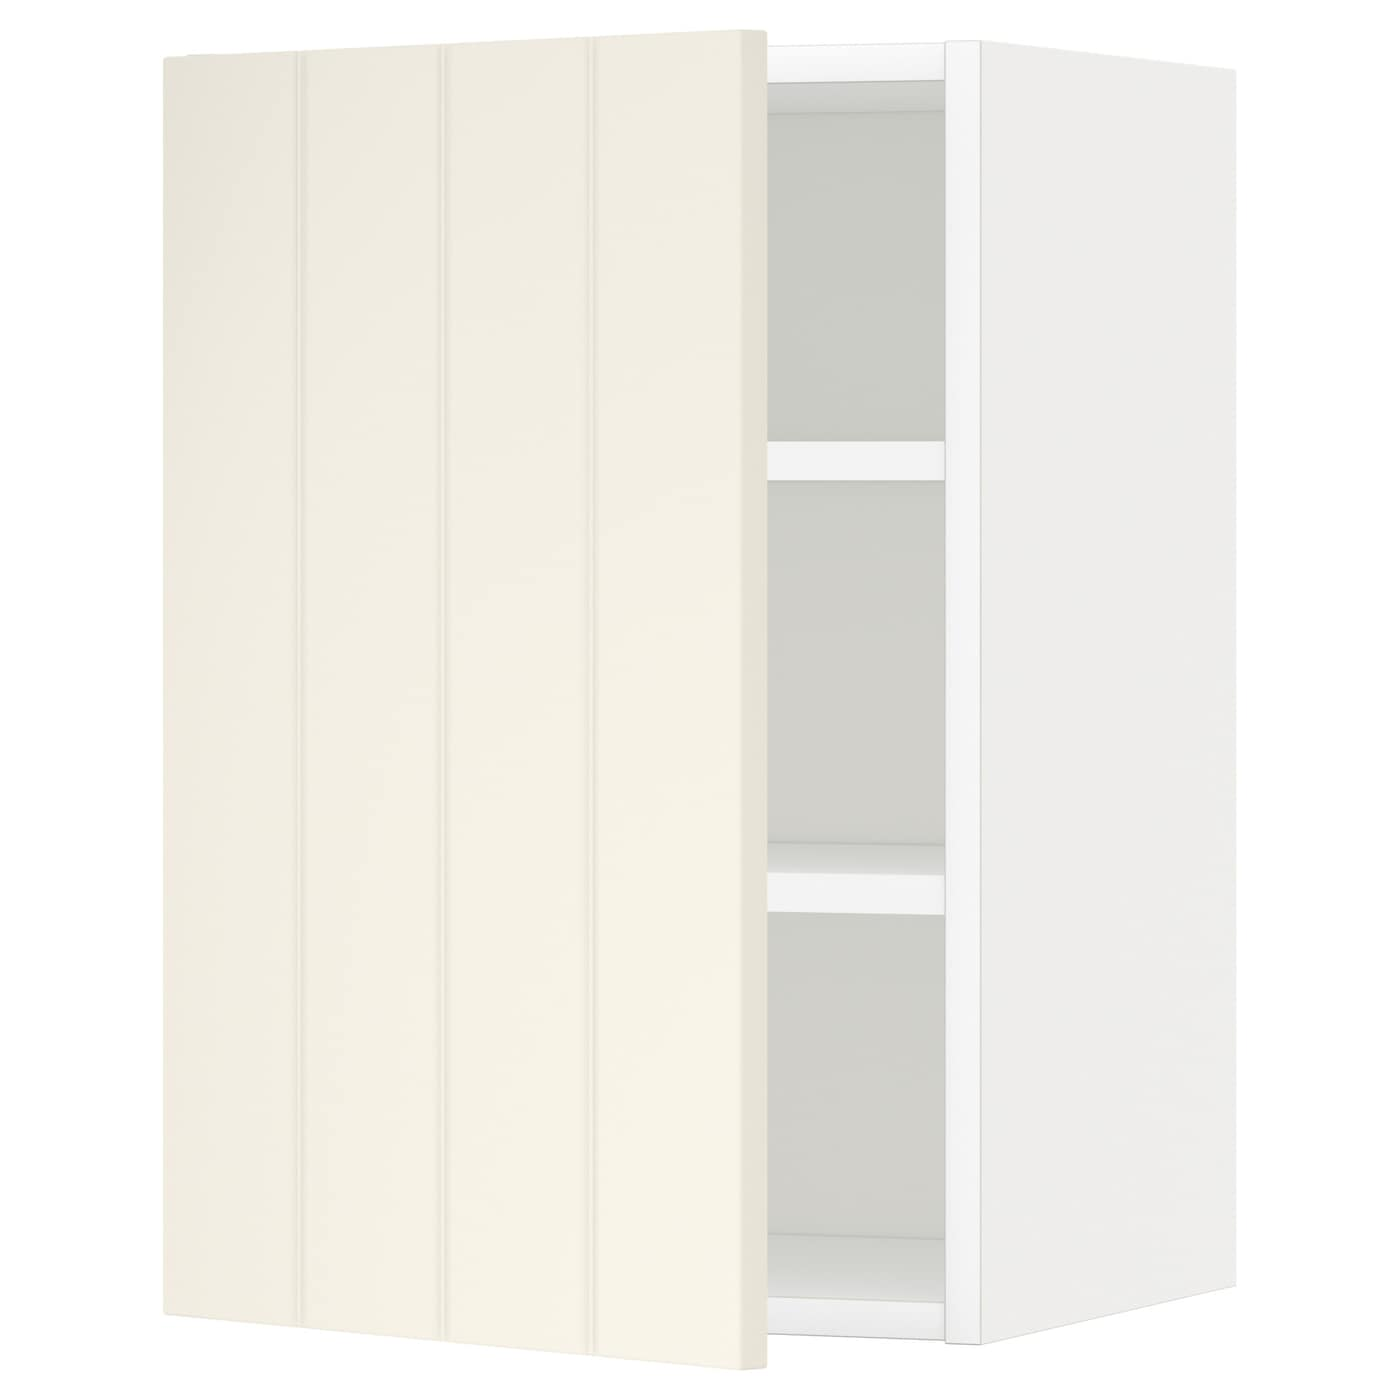 Ikea metod wall cabinet with shelves you can choose to mount the door on the right